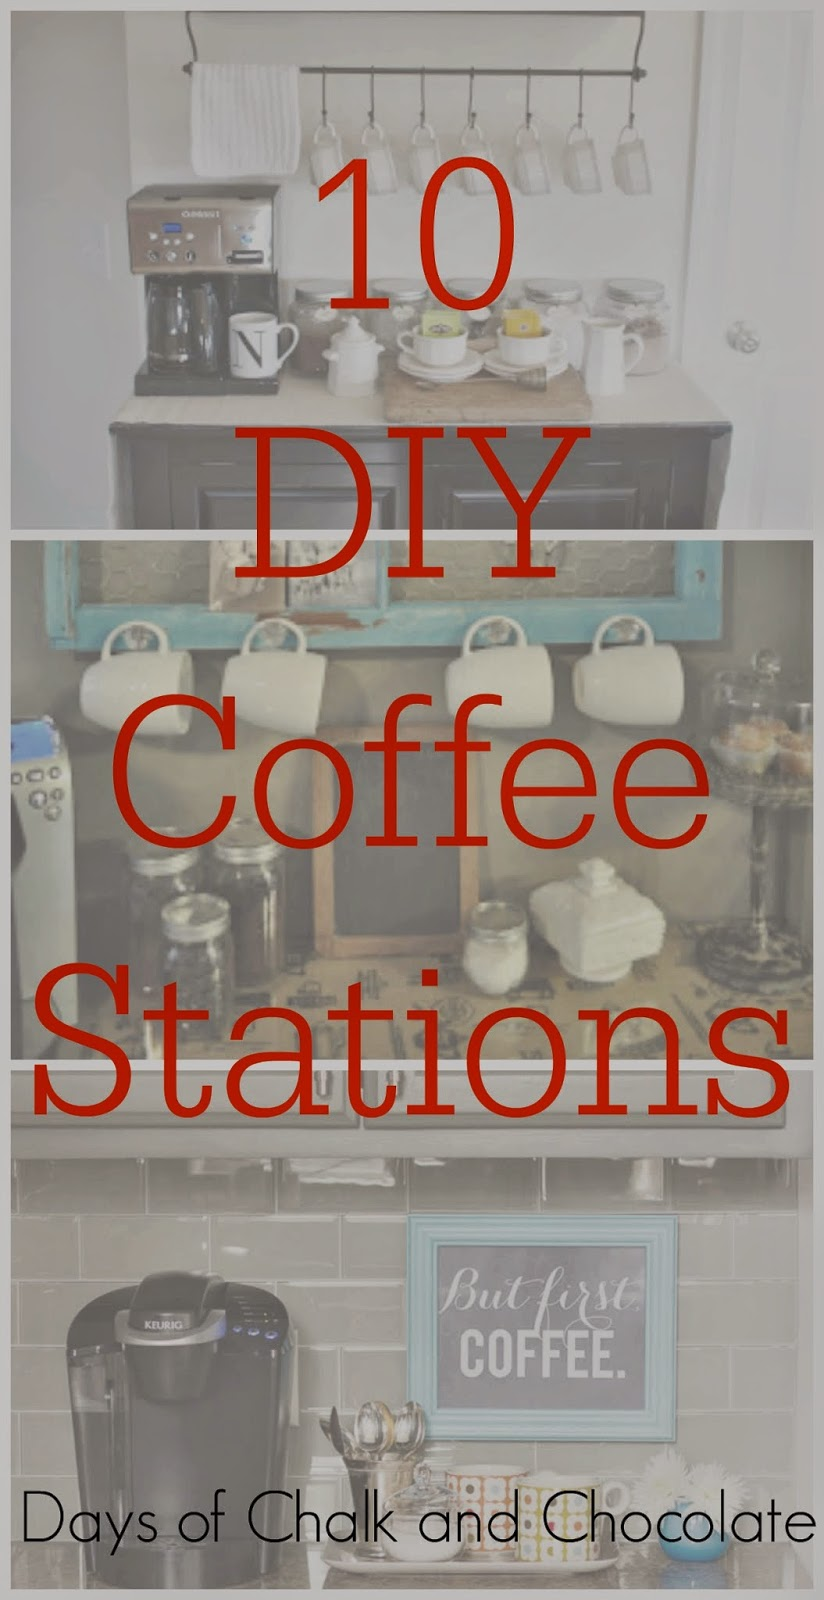 Coffee Station 10 Diy Coffee Stations Days Of Chalk And Chocolate